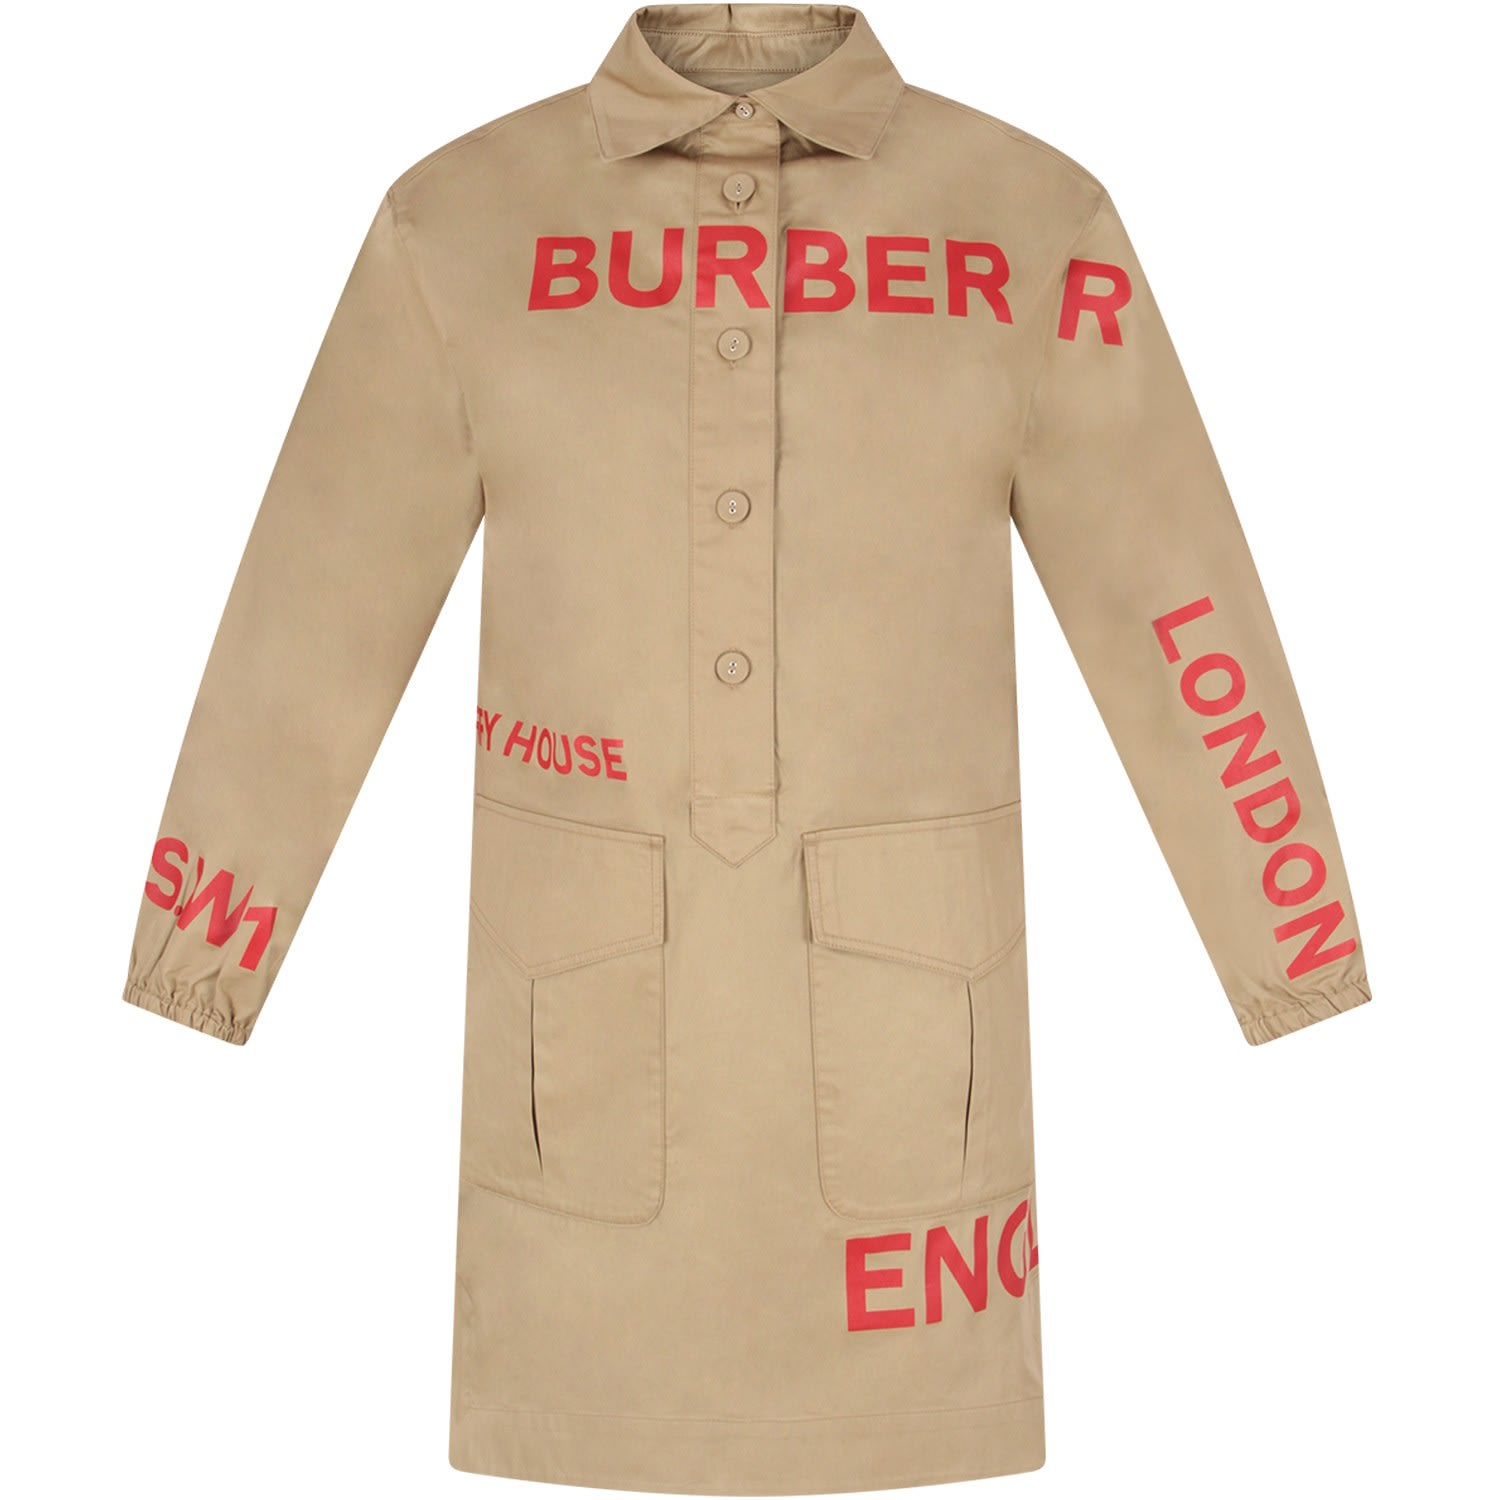 Burberry Beige Girl Dress With Red Logo And Writing